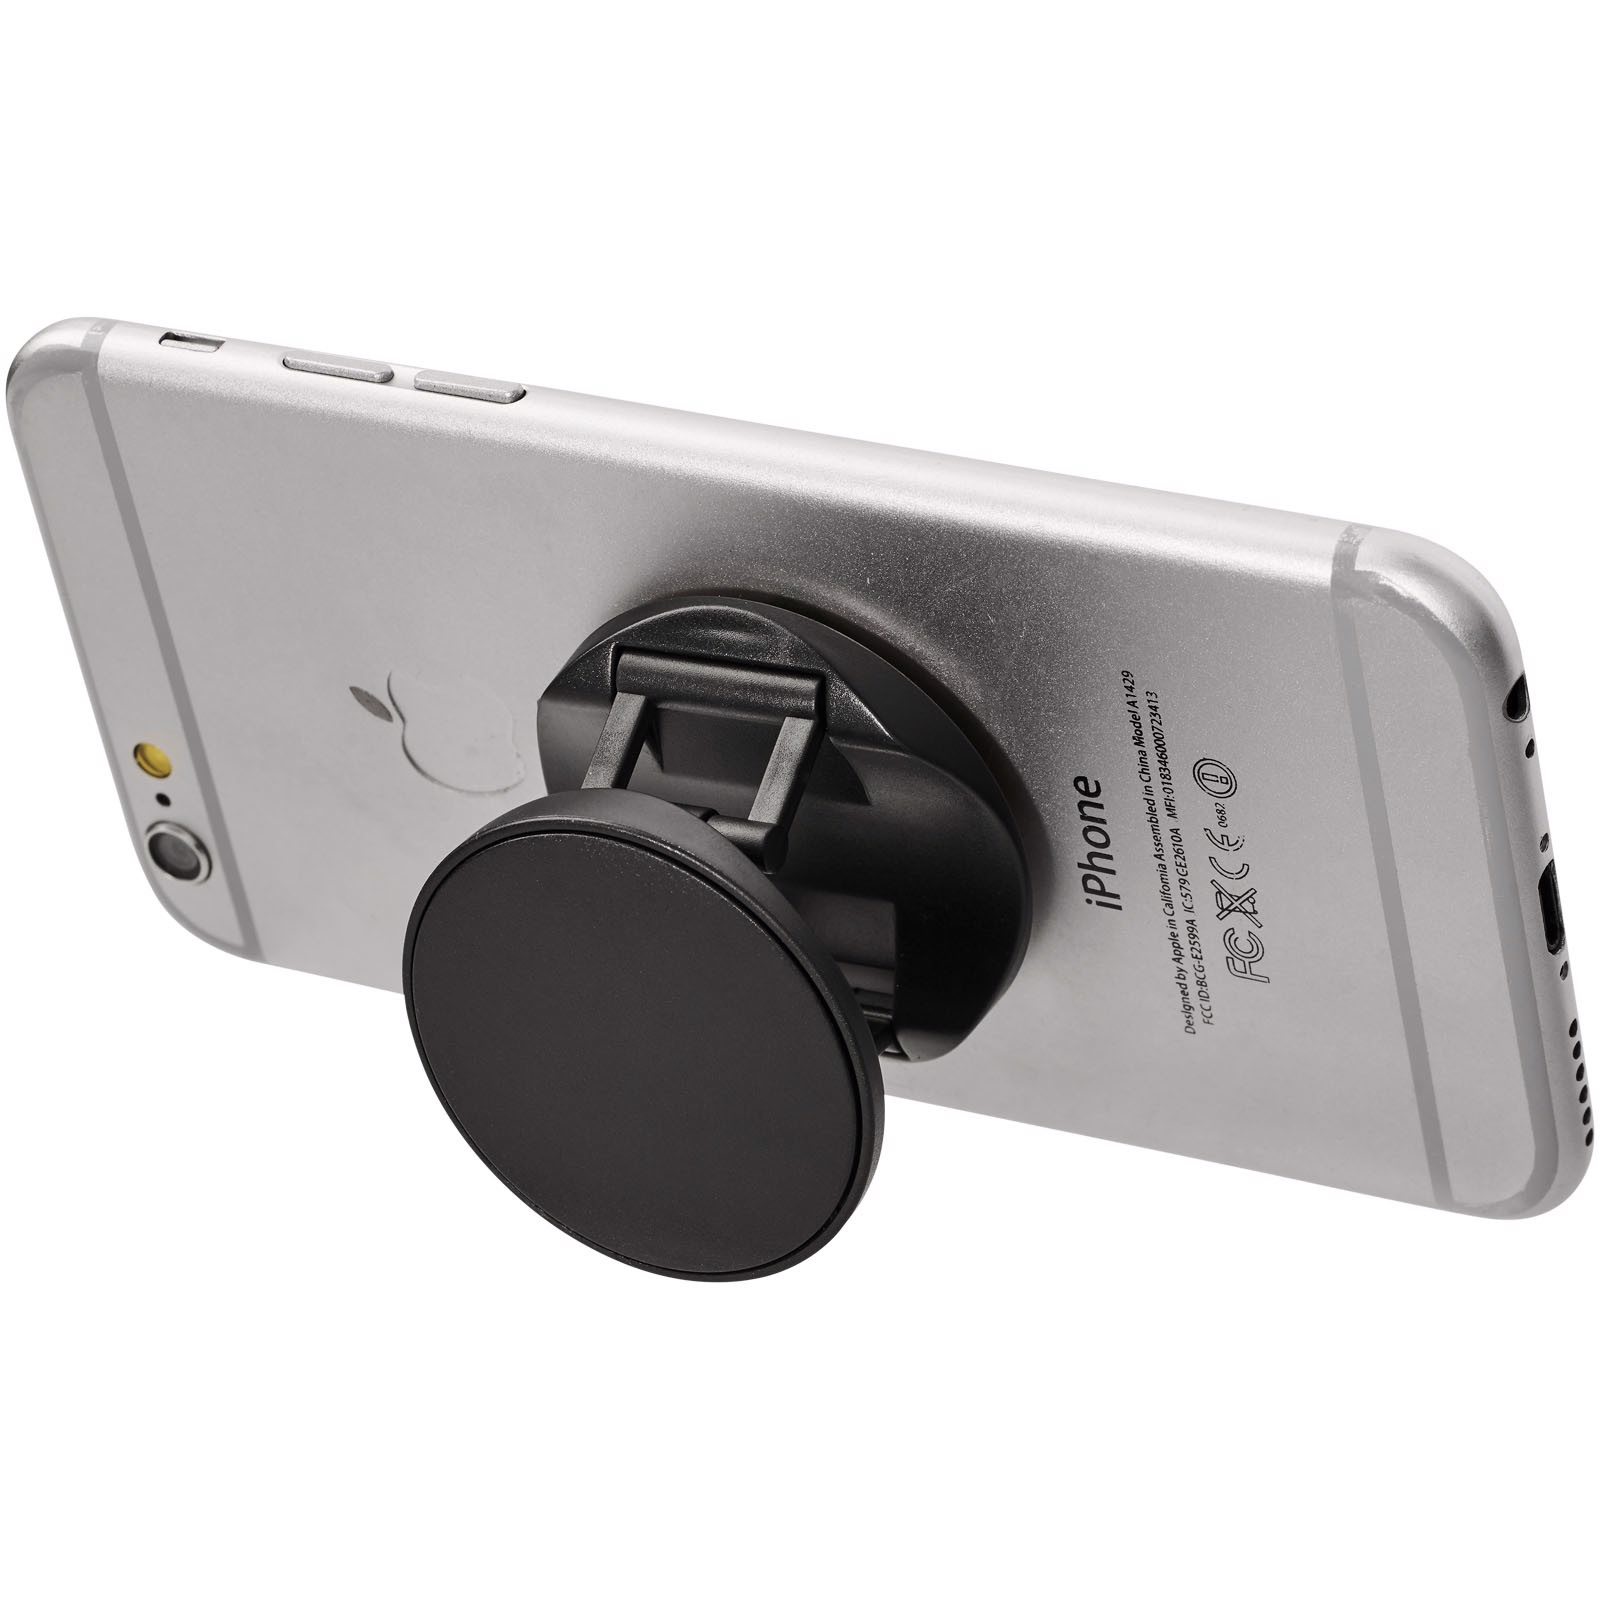 Brace phone stand with grip - Solid black